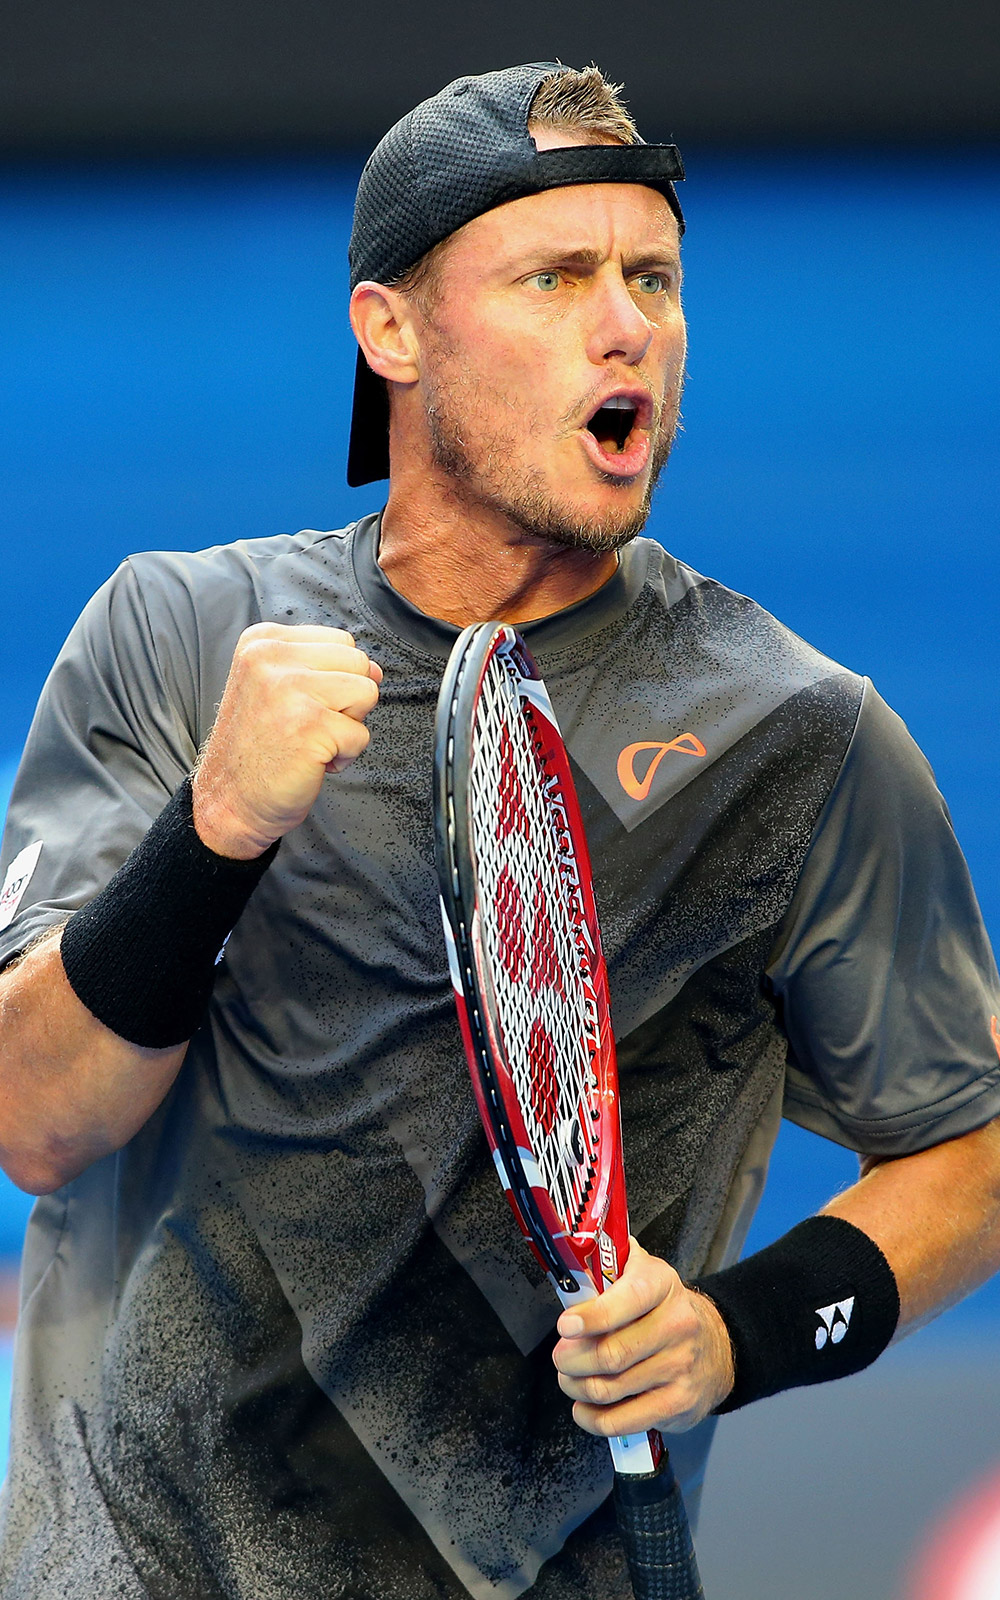 Lleyton Hewitt – Player Profiles Players and Rankings News and